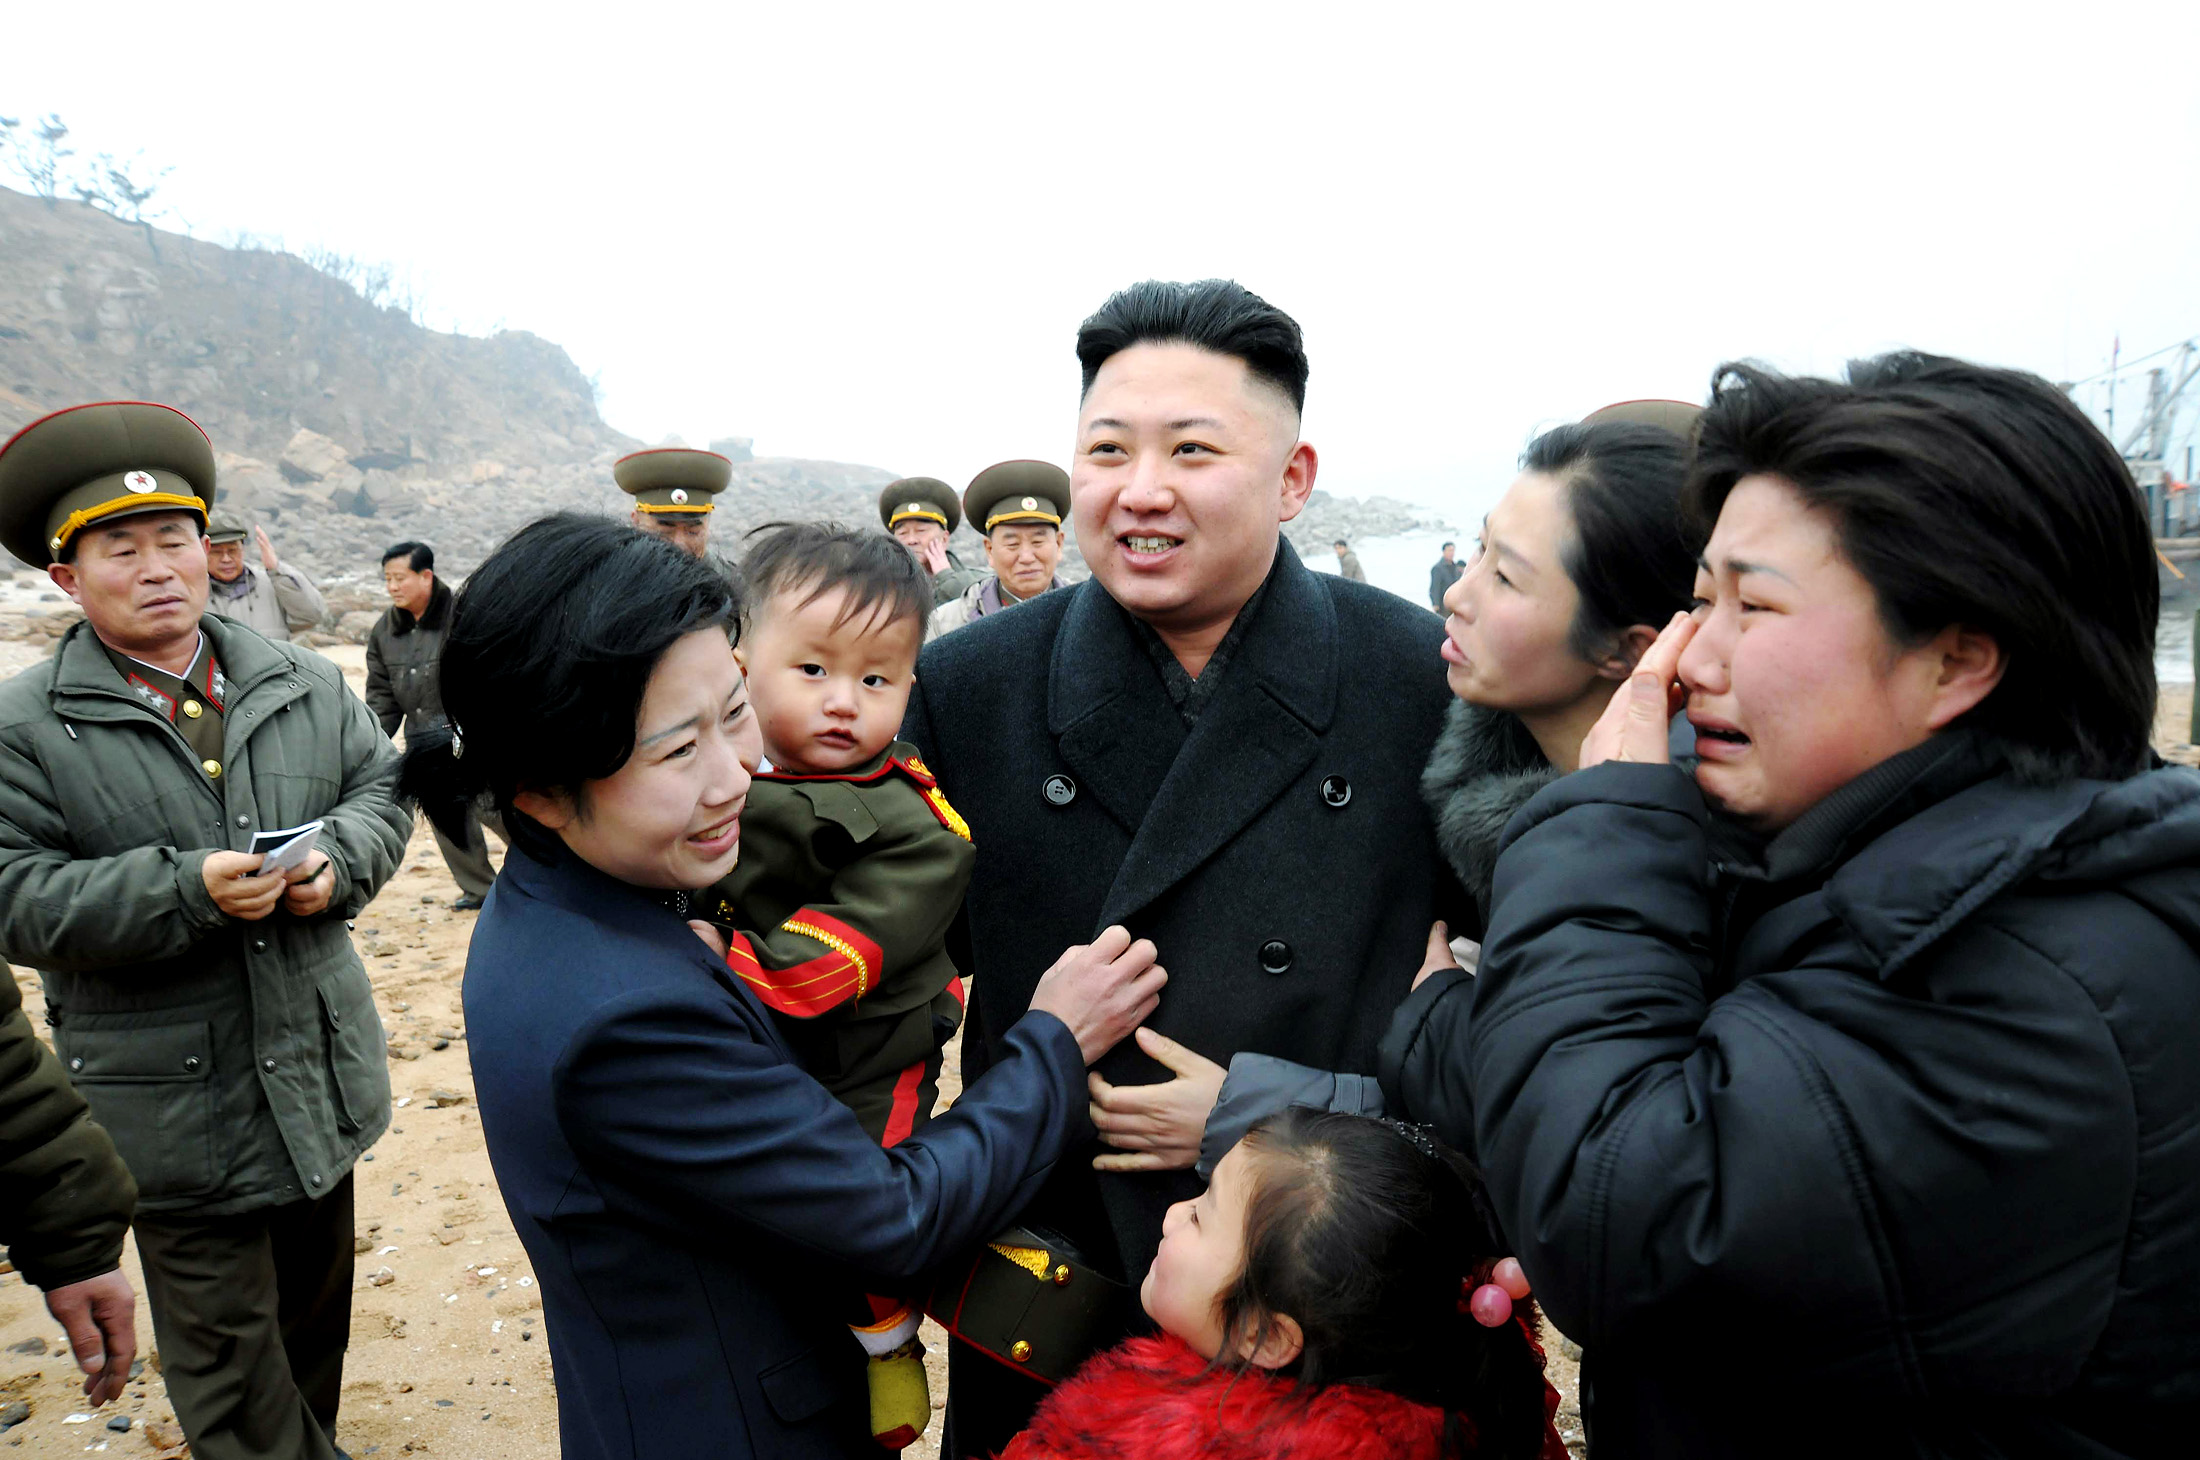 It is no secret that North Koreans adore their supreme leader and, interestingly, many of them seem to be of the opposite gender. Here is a look at him with some of his most ardent female fans